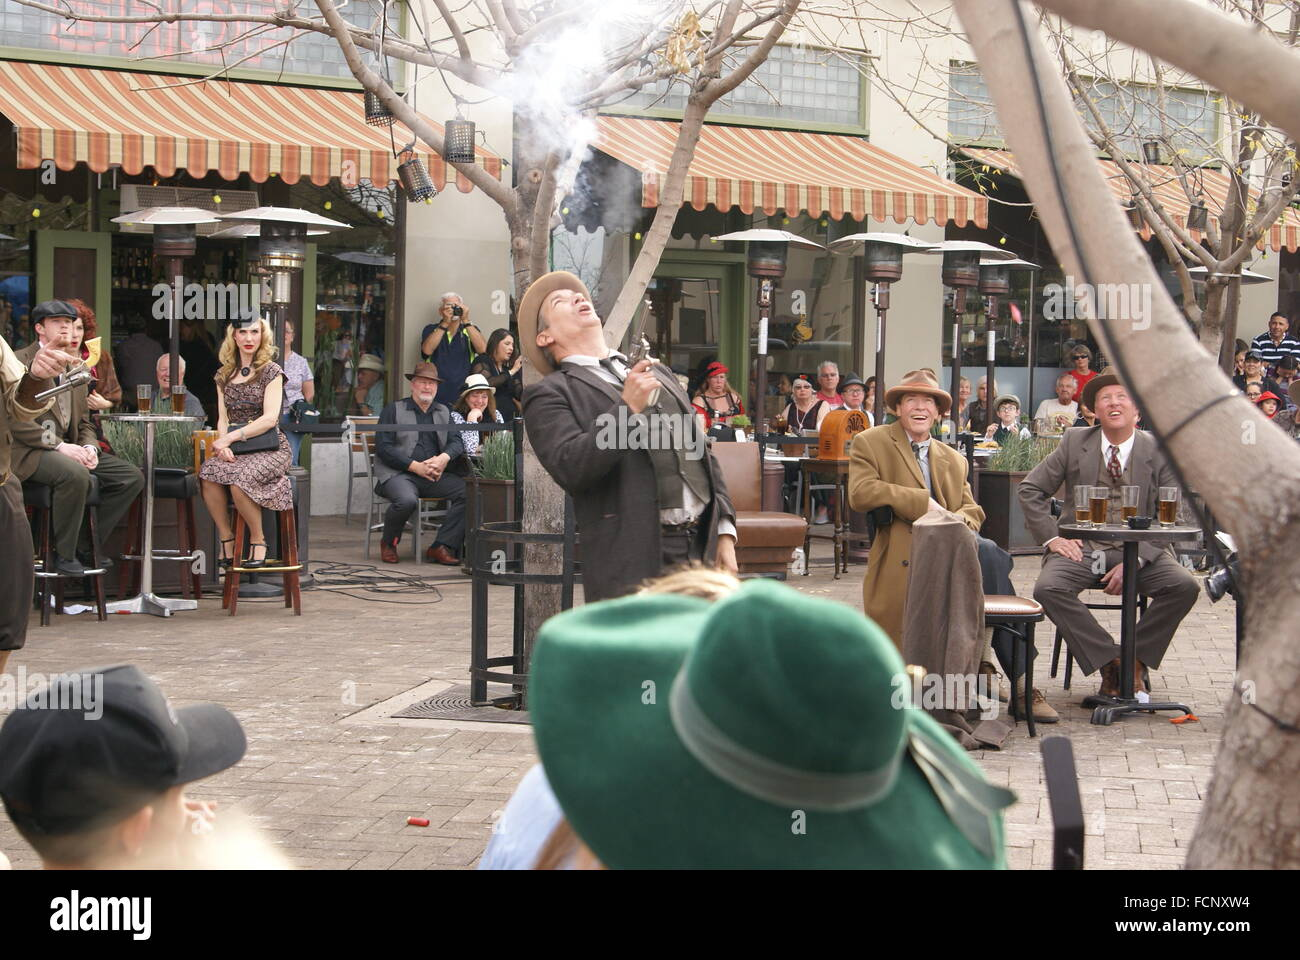 Tucson, Arizona, USA. 23rd January, 2016. Actors perform a reenactment of the cature of John Dillinger, public enemy - Stock Image